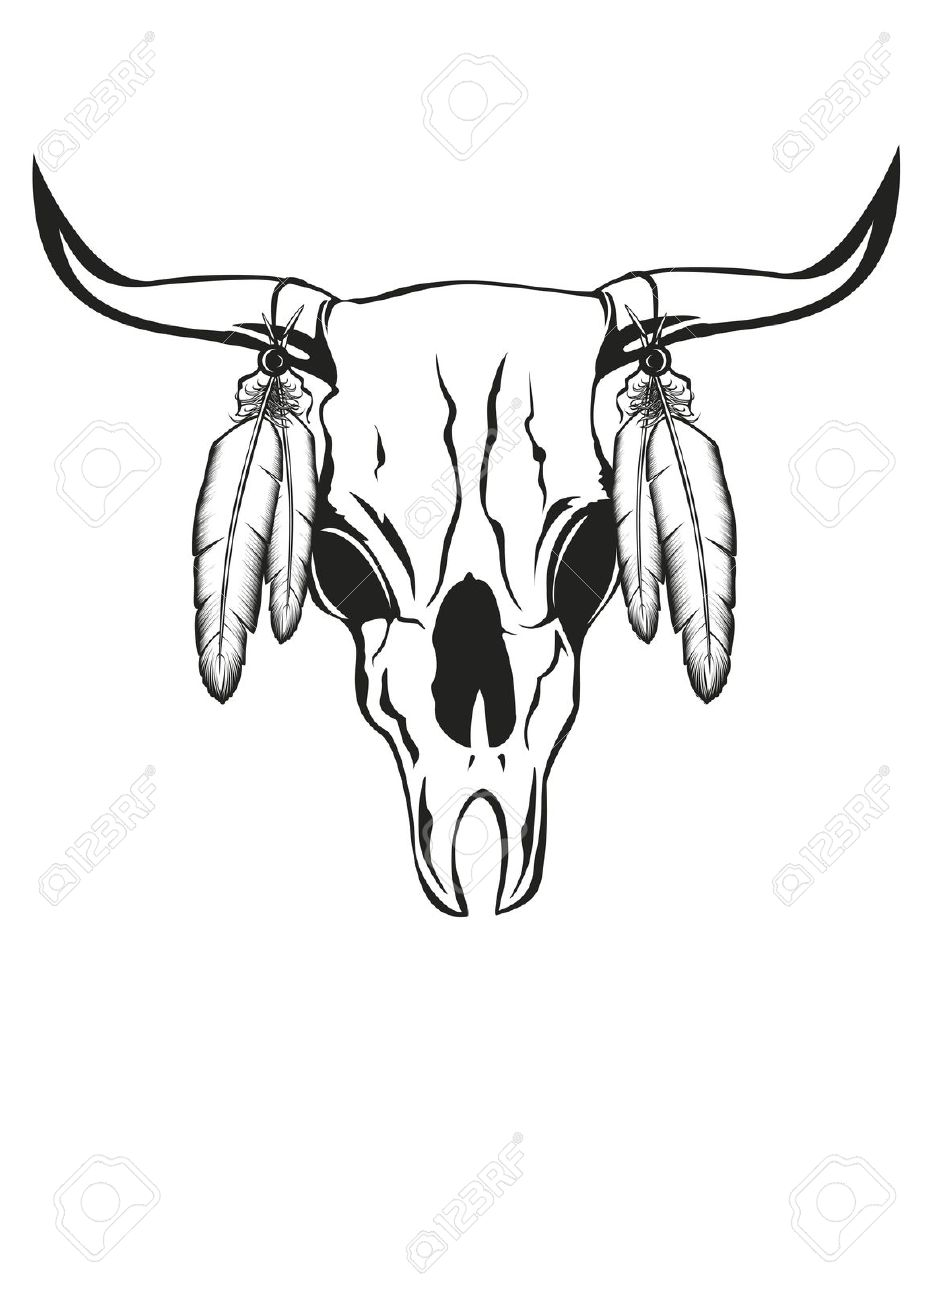 Illustration Skull Bull With Feathers Royalty Free Cliparts.